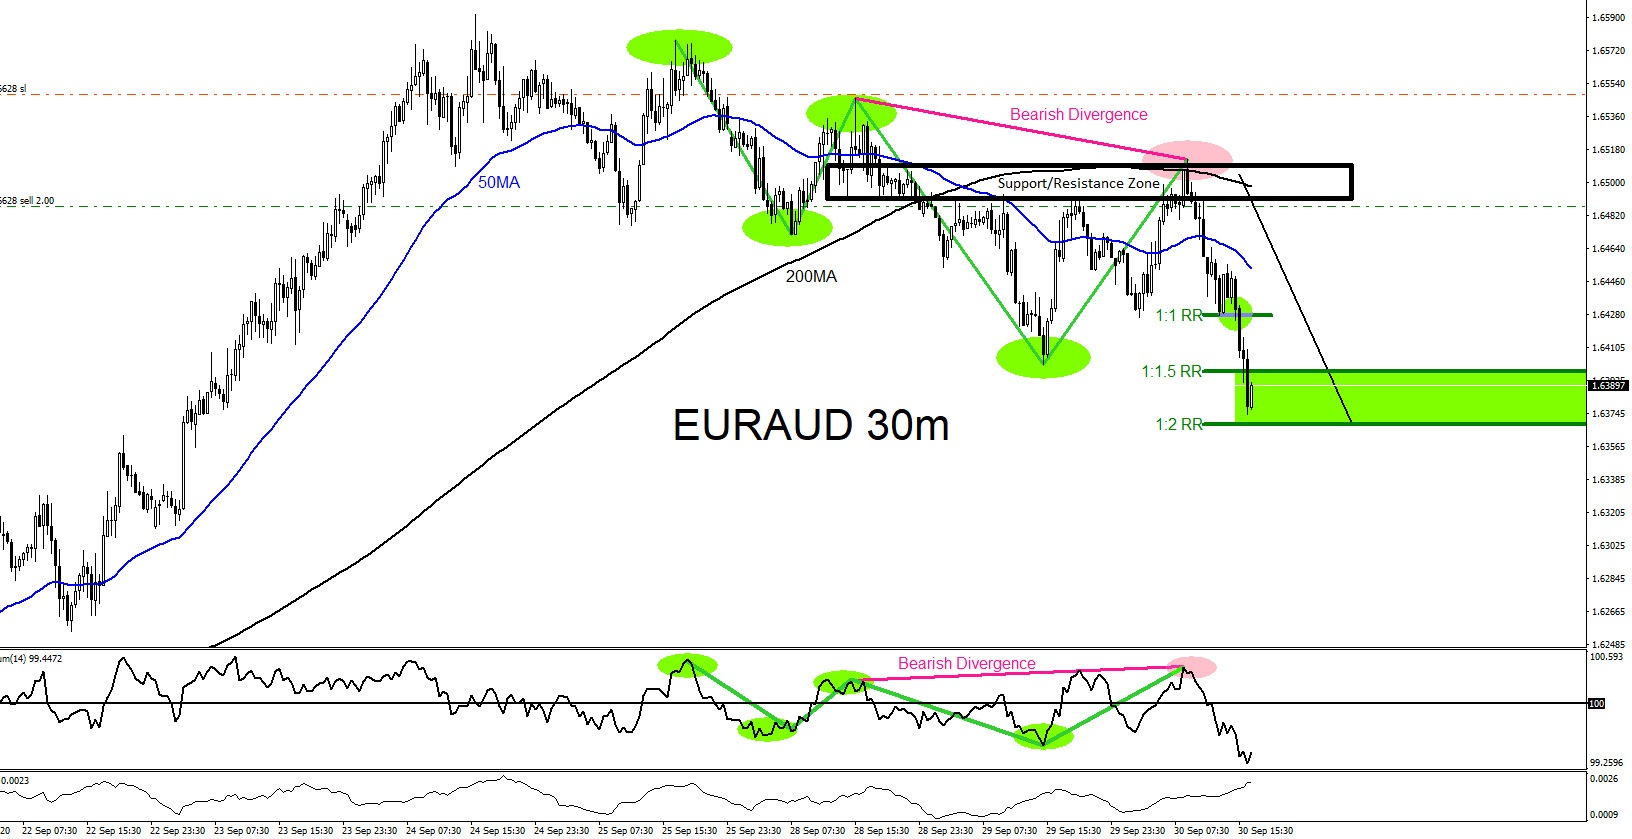 EURAUD : Trading the Move Lower